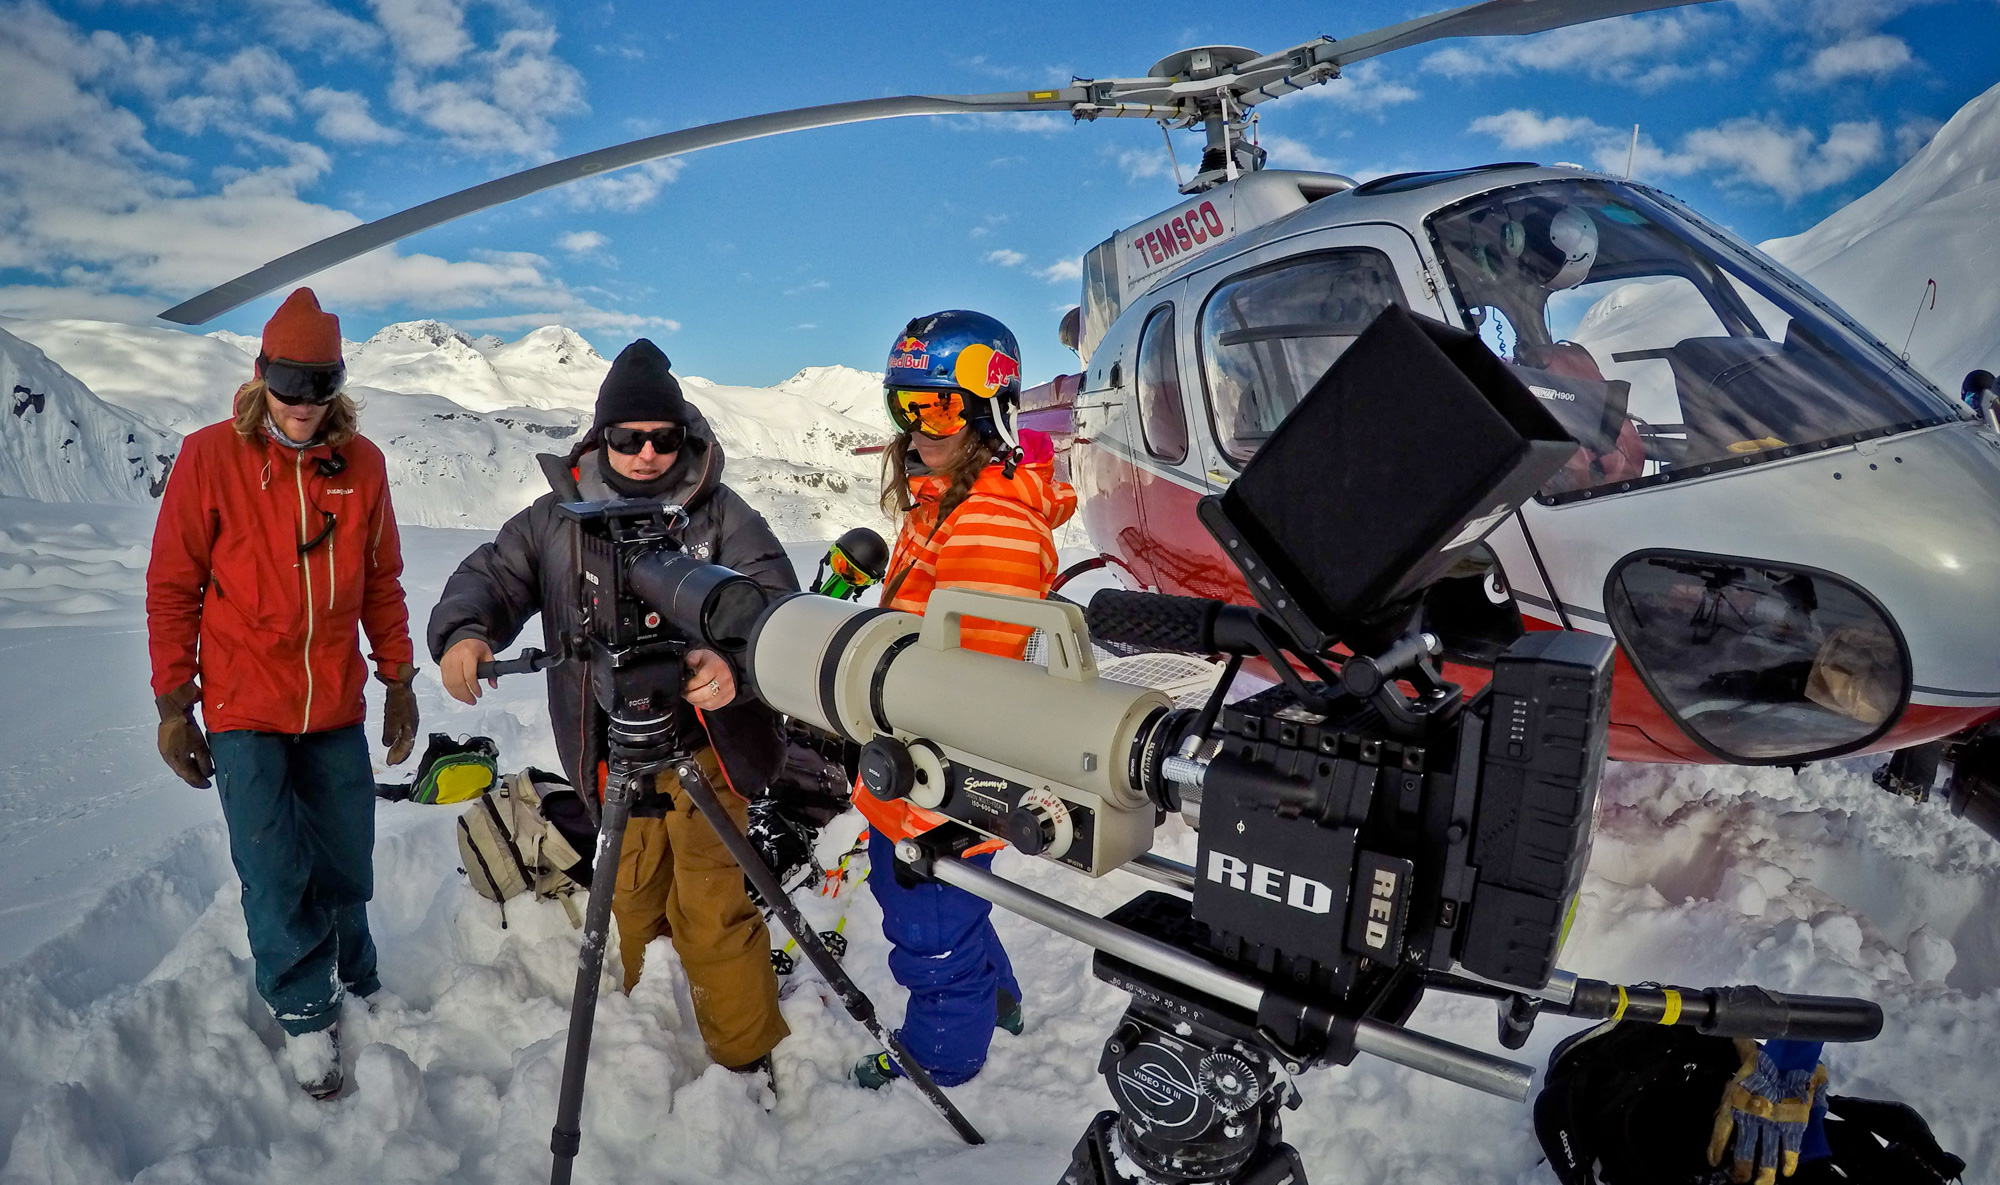 Jason Ebelheiser Behind the Lens Interview: Precision Filming in Unpredictable Environments